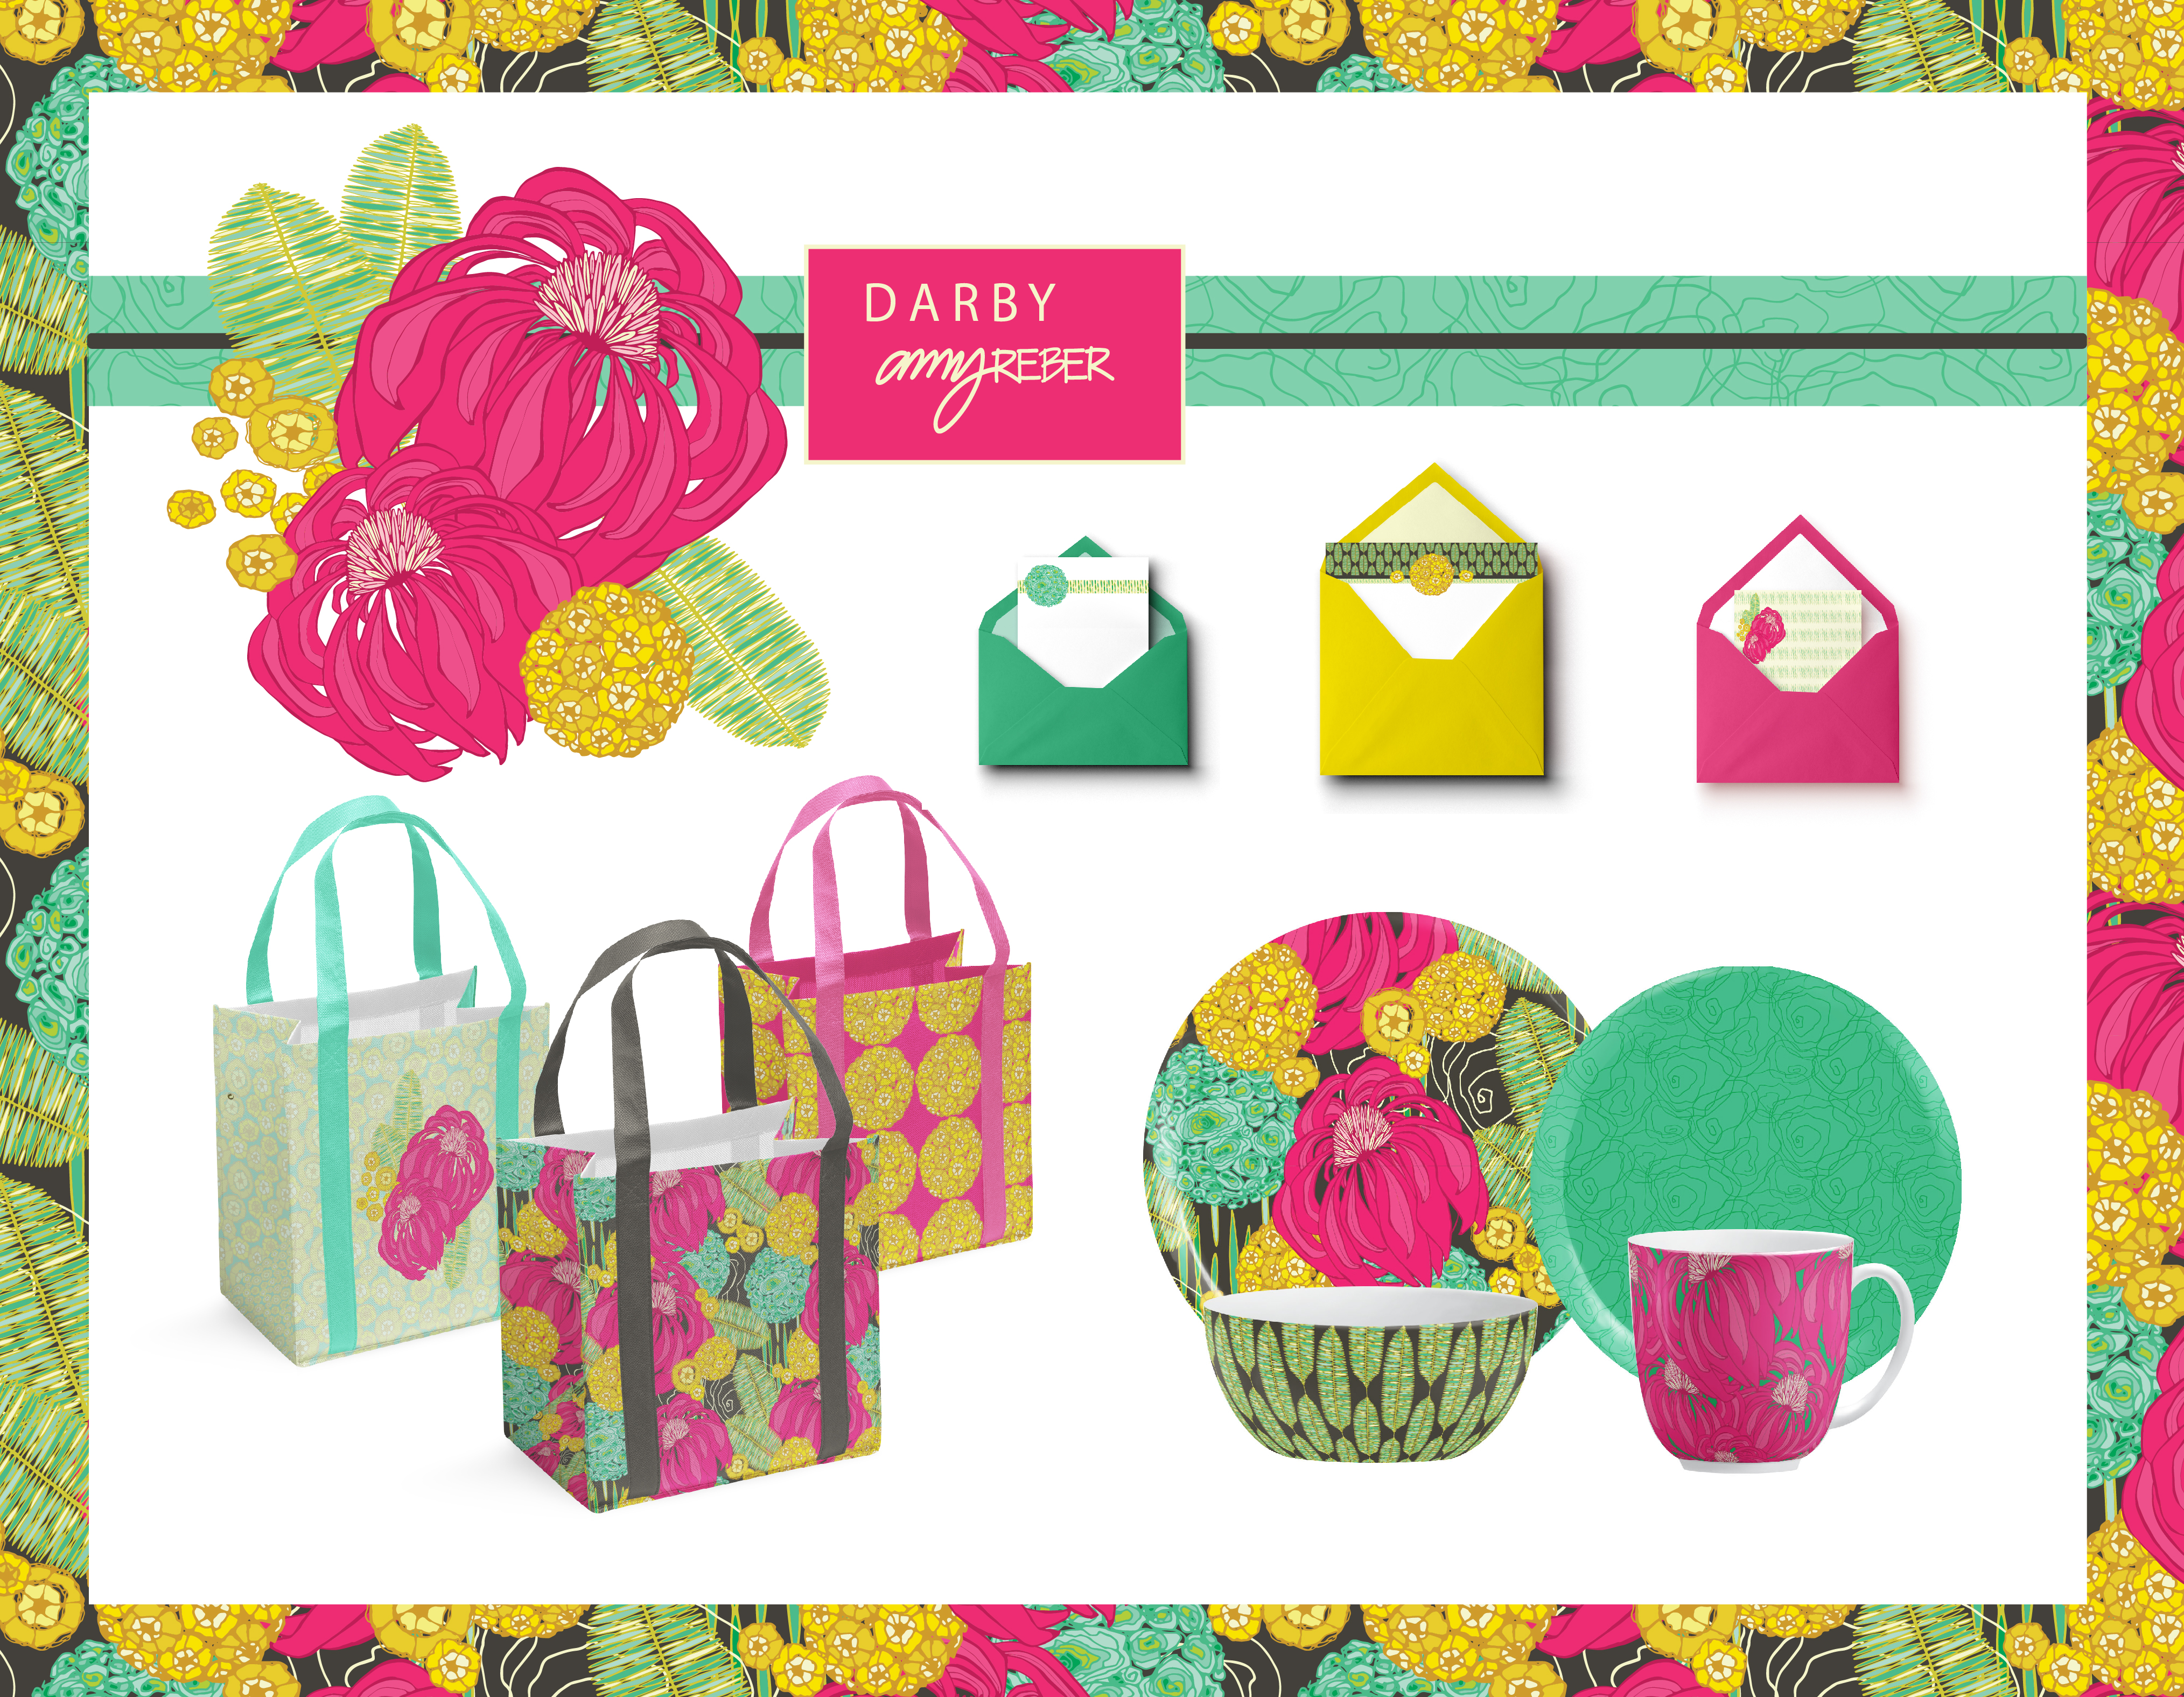 DARBY-PLATES STATIONARY BAGS - AMYREBER-01